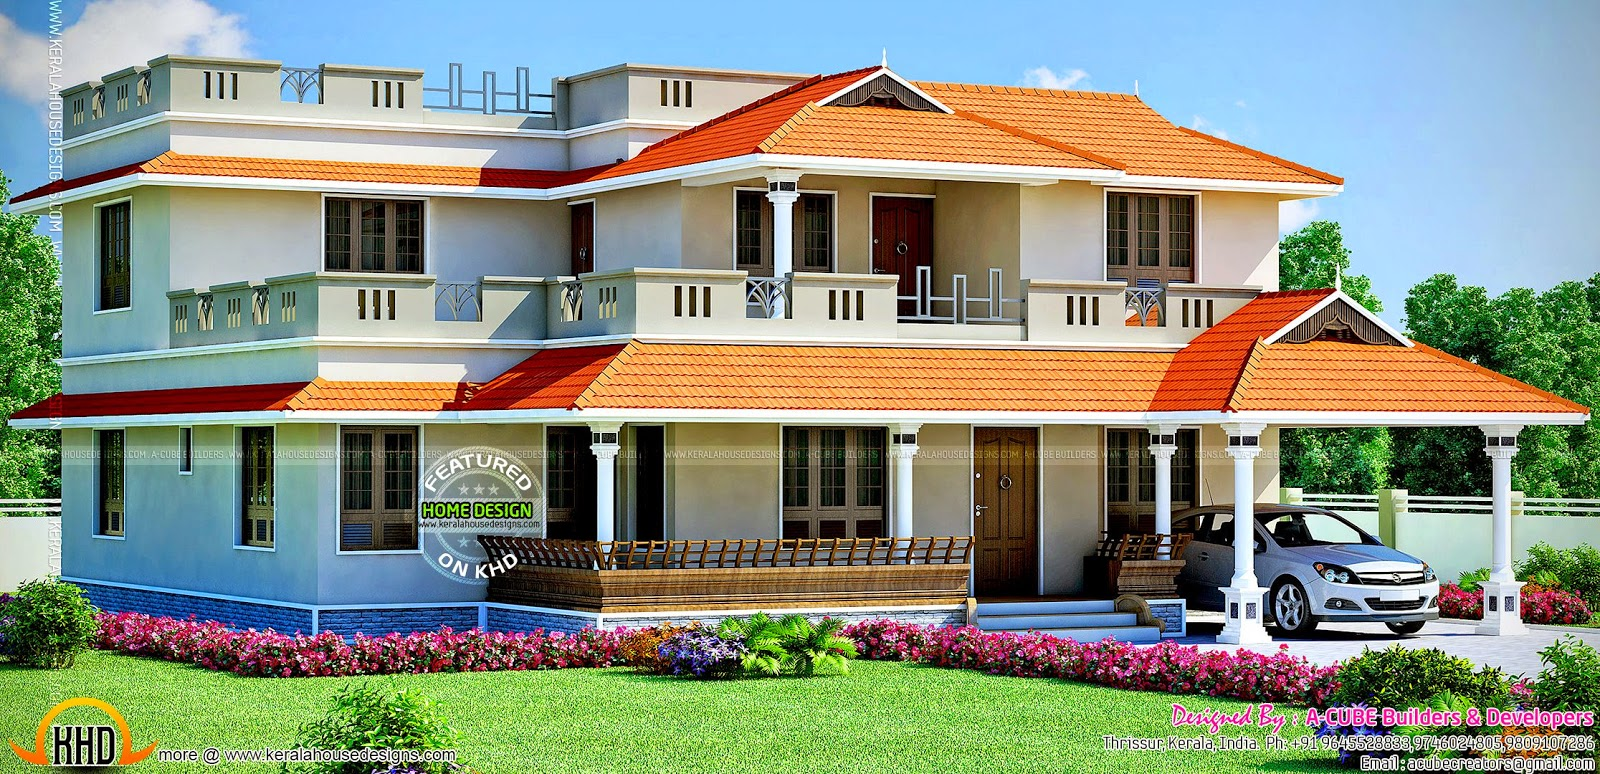 Large house design kerala home design and floor plans for Design this house